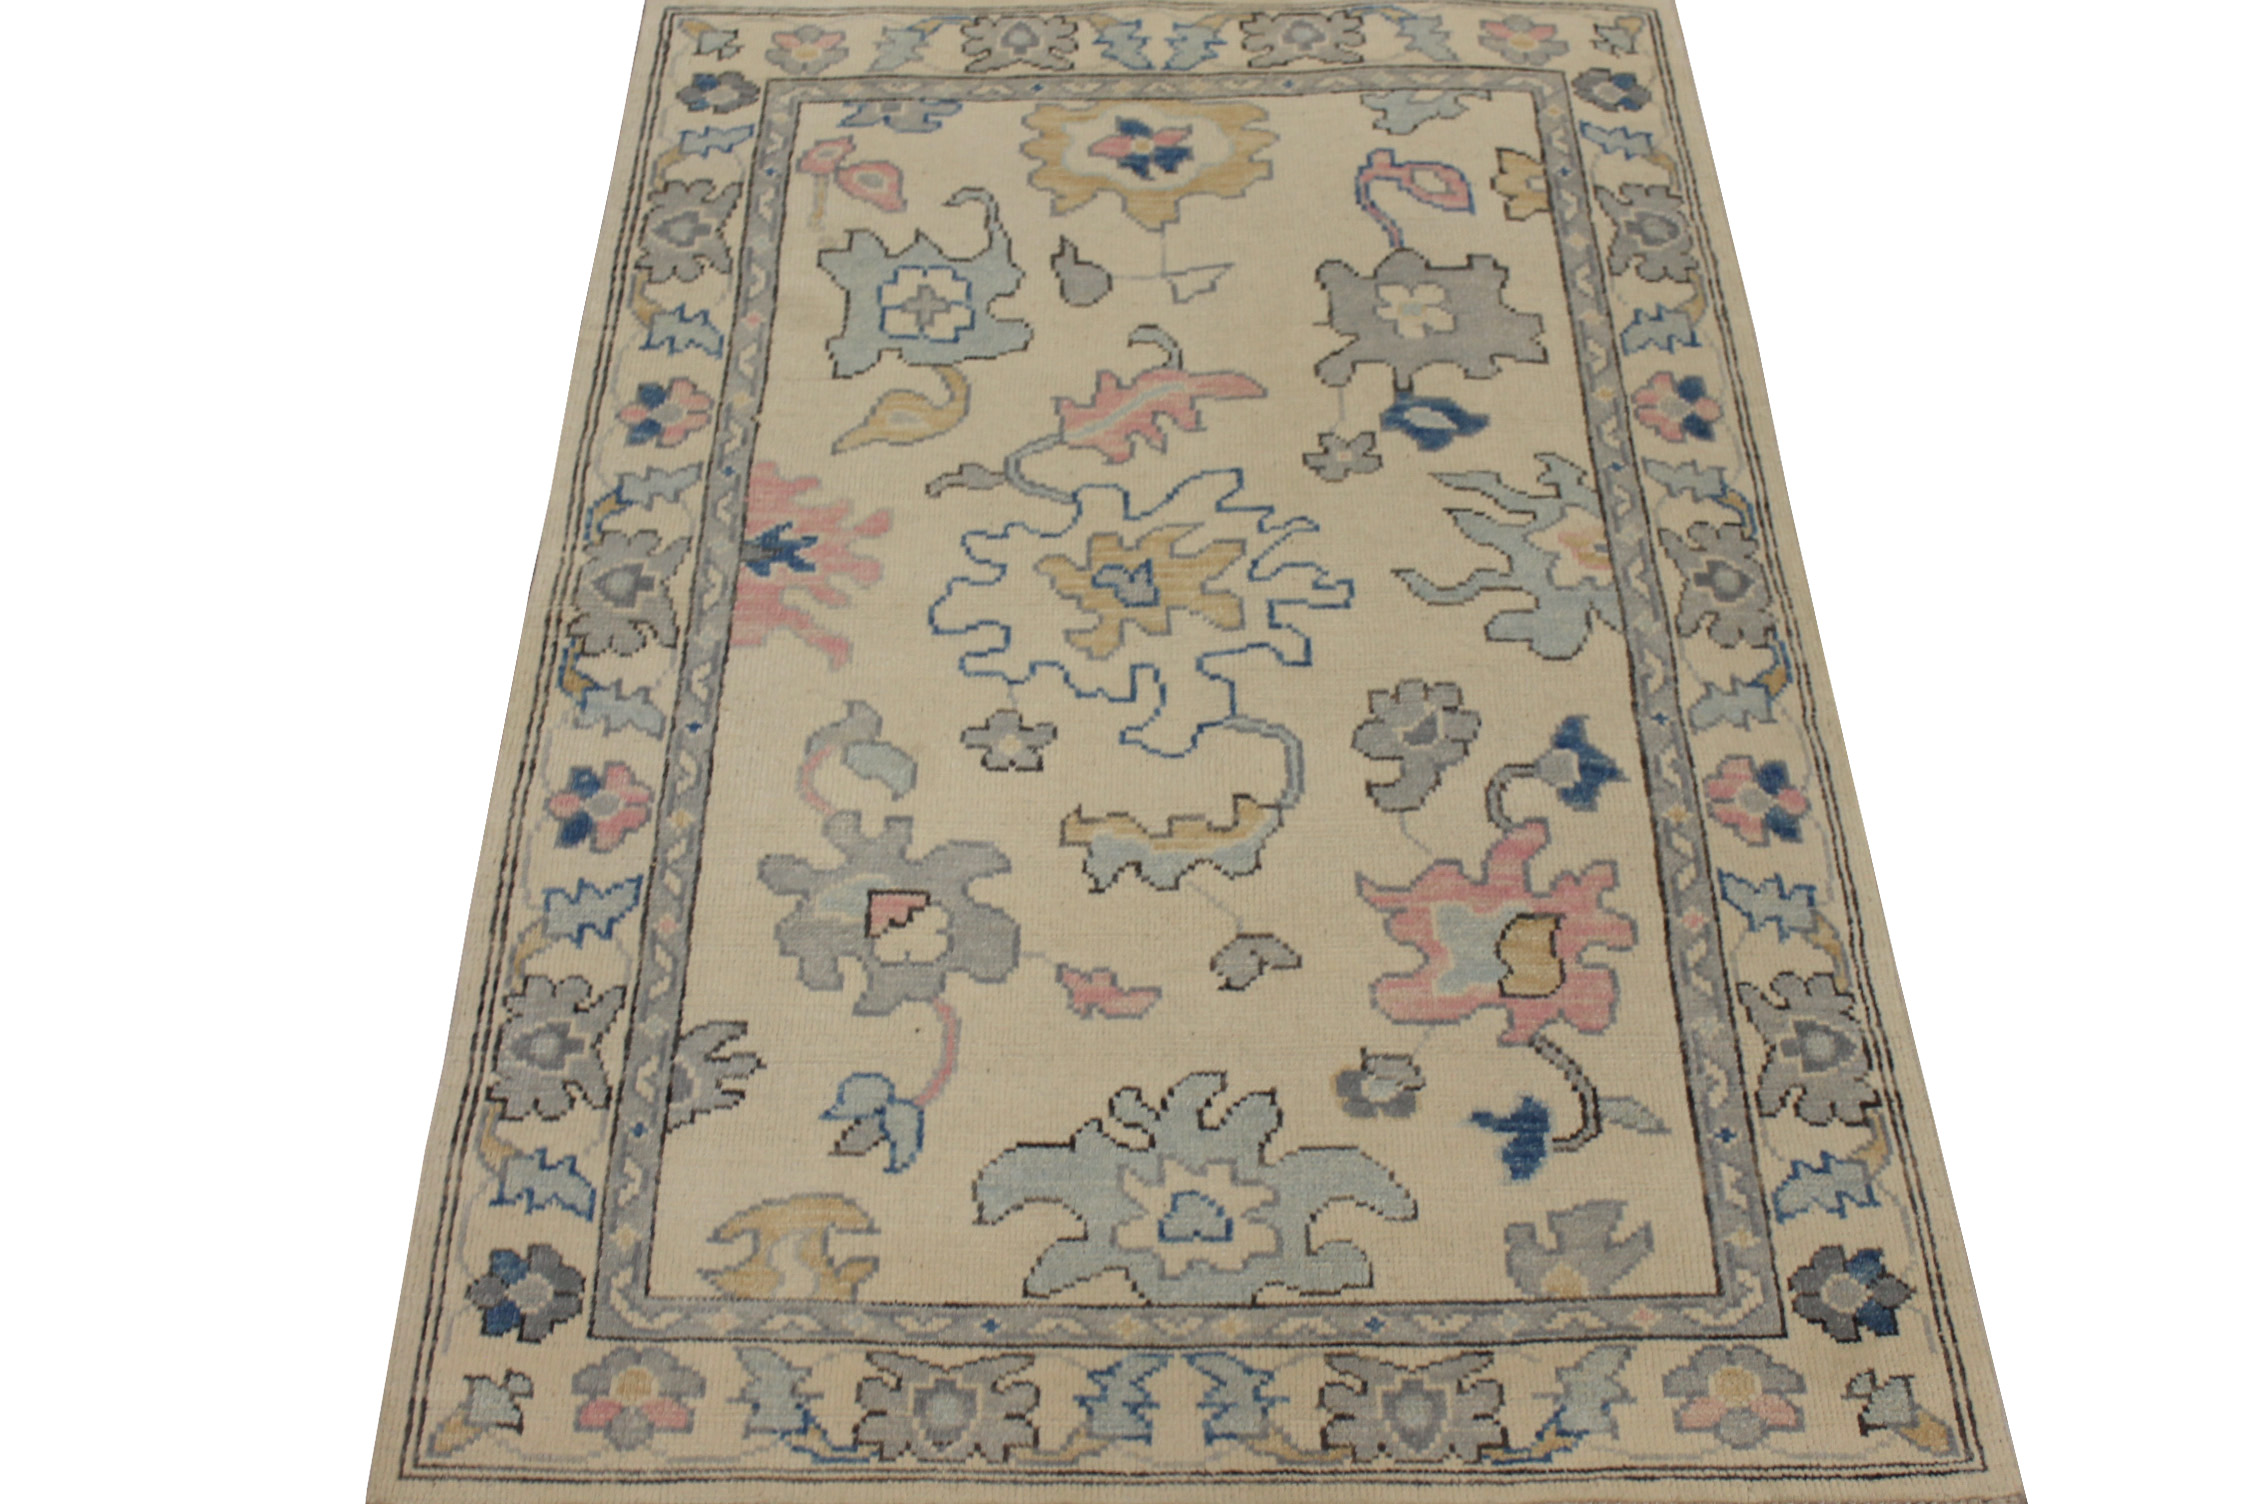 4x6 Oushak Hand Knotted Wool Area Rug - MR024415